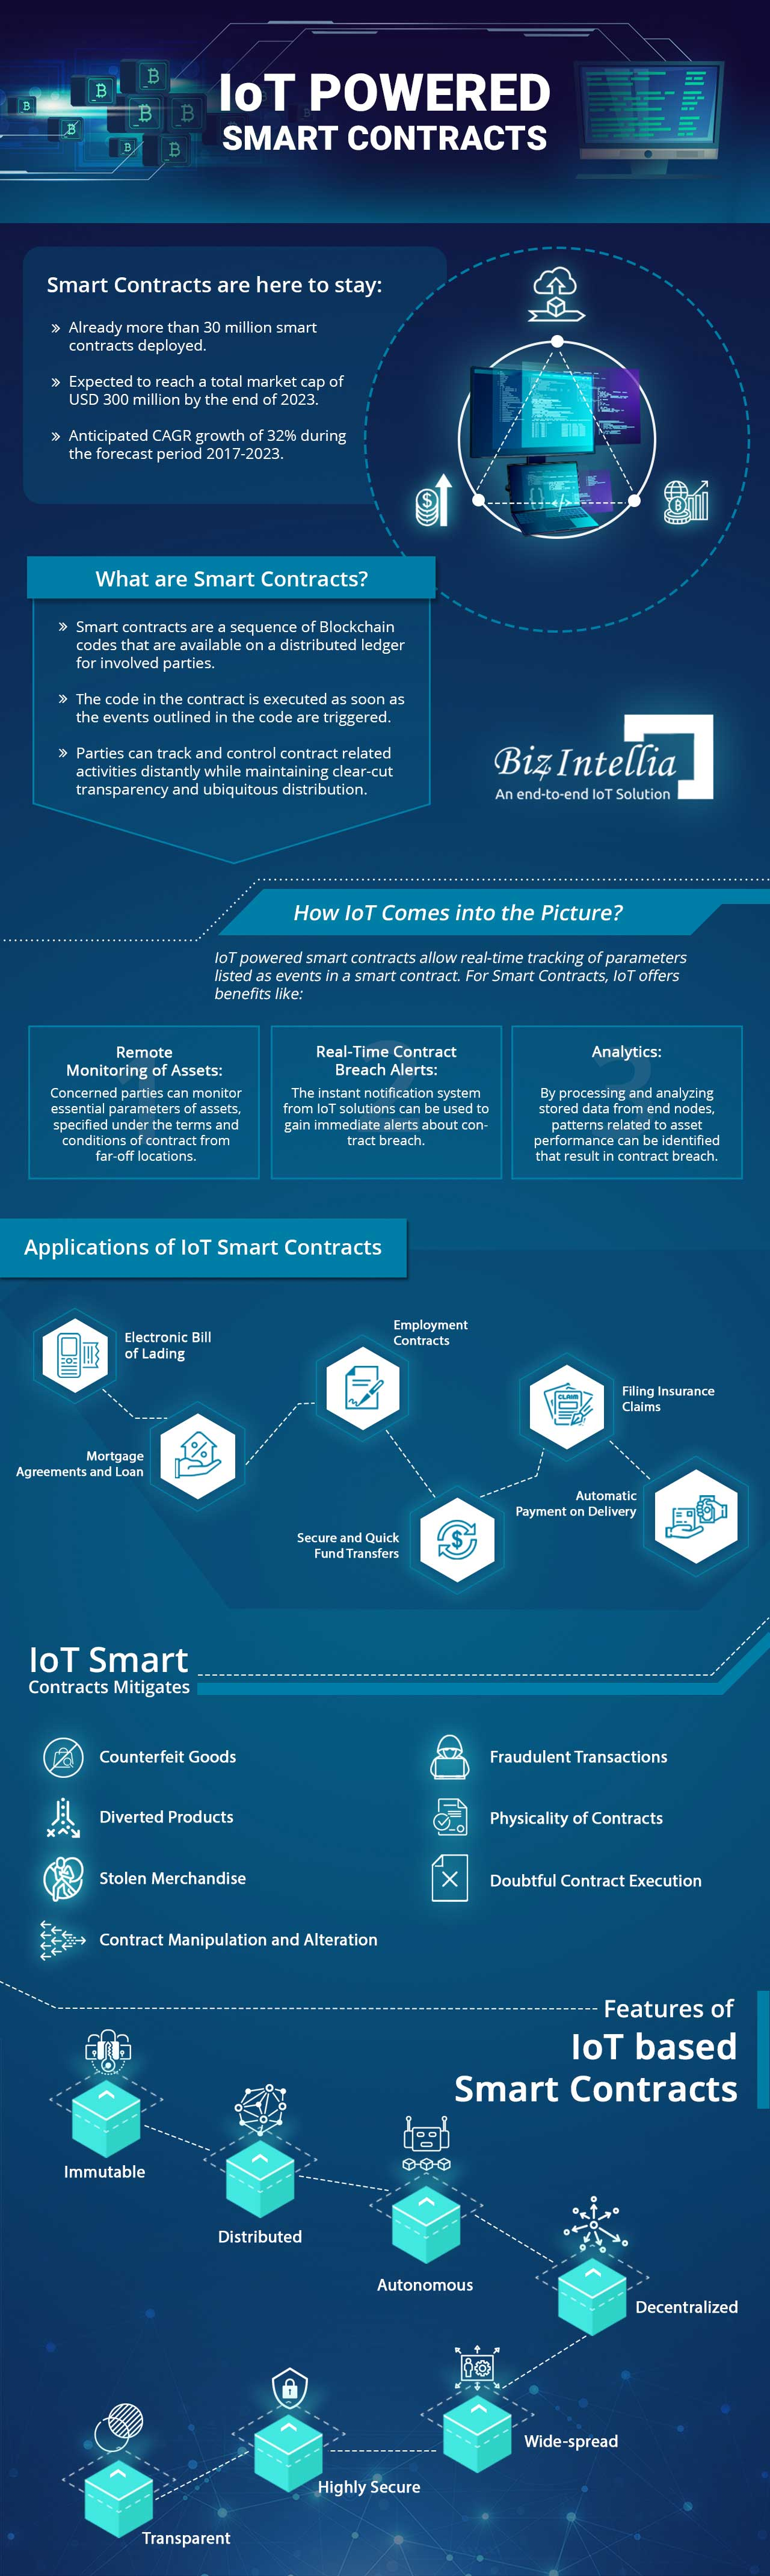 iot-smart-contracts